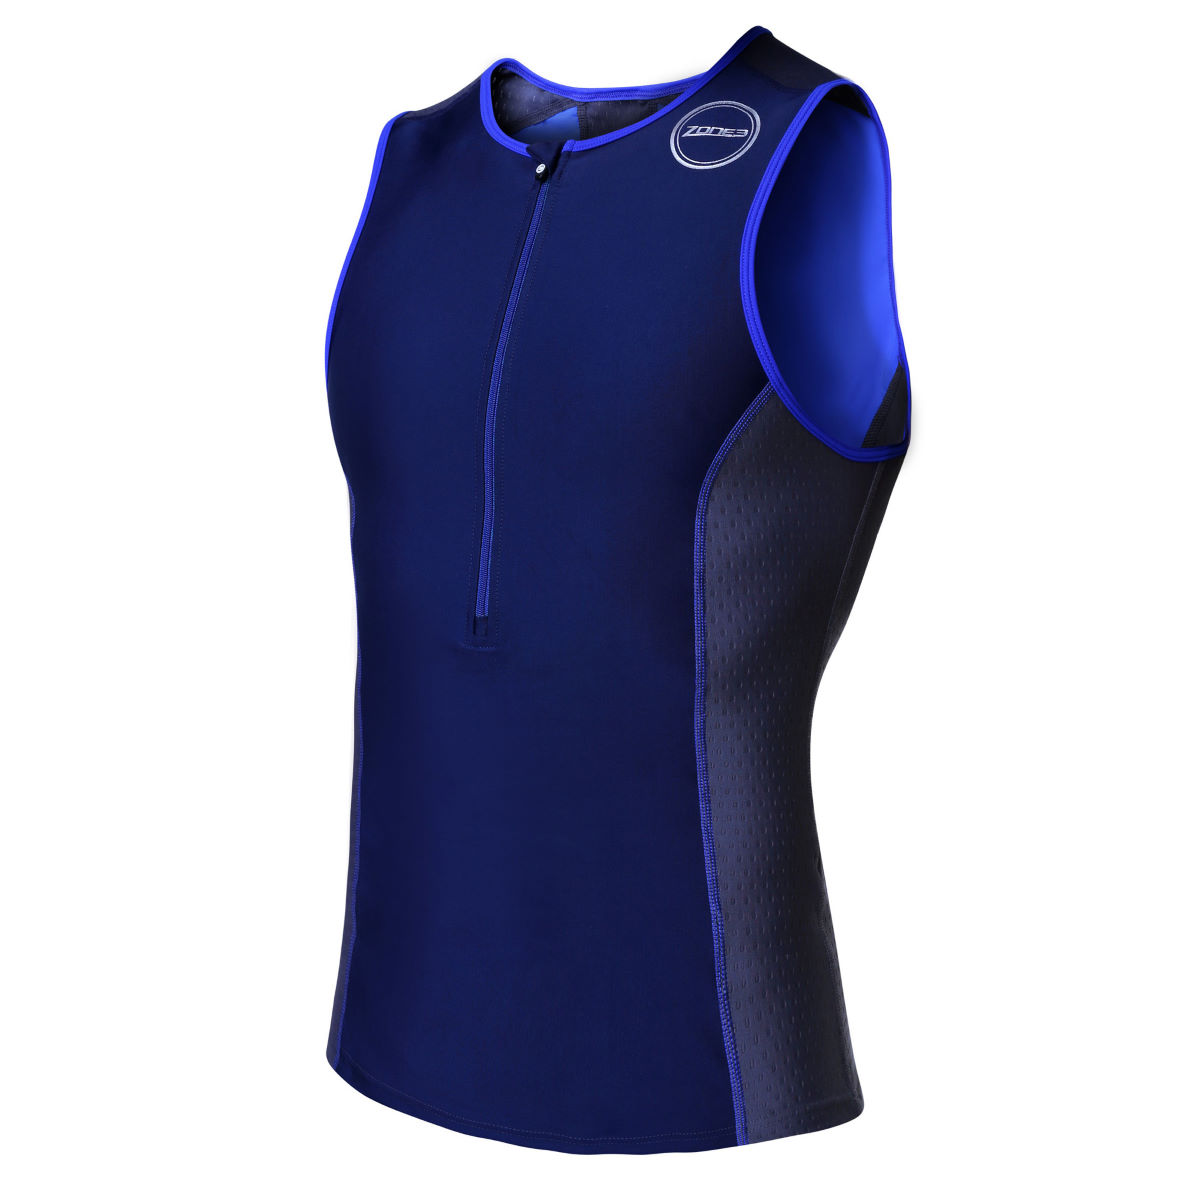 Maillot Zone3 Aquaflo+ (bleu) - XS Navy/Grey/Blue Hauts de triathlon